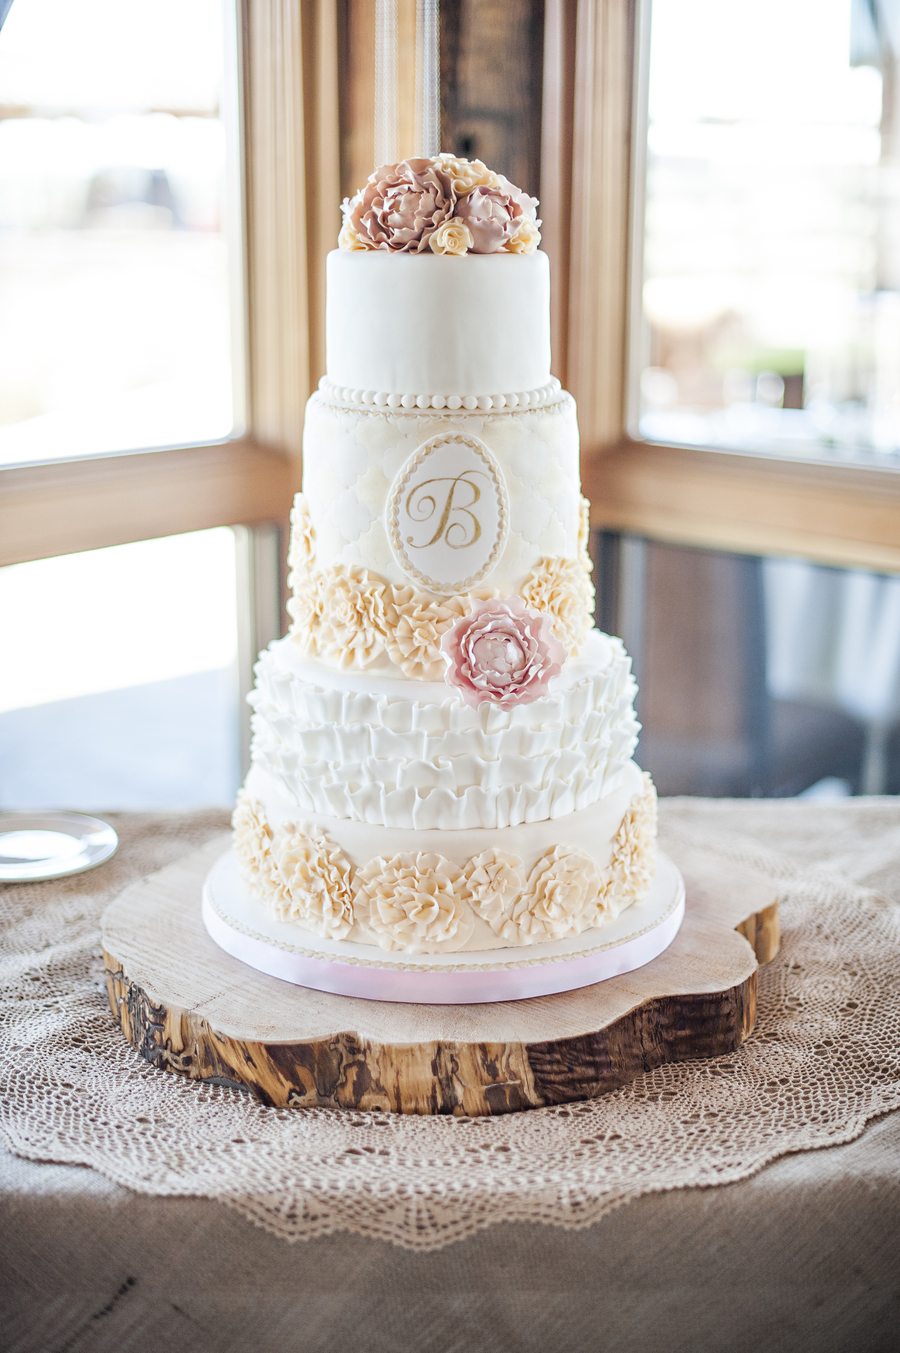 933911Z6wI_romantic-wedding-cake-with-lots-of-ruffles-and-sugar-peonies-and-a-hand-painted-monogram-by-sweet-and-swanky-cakes_900